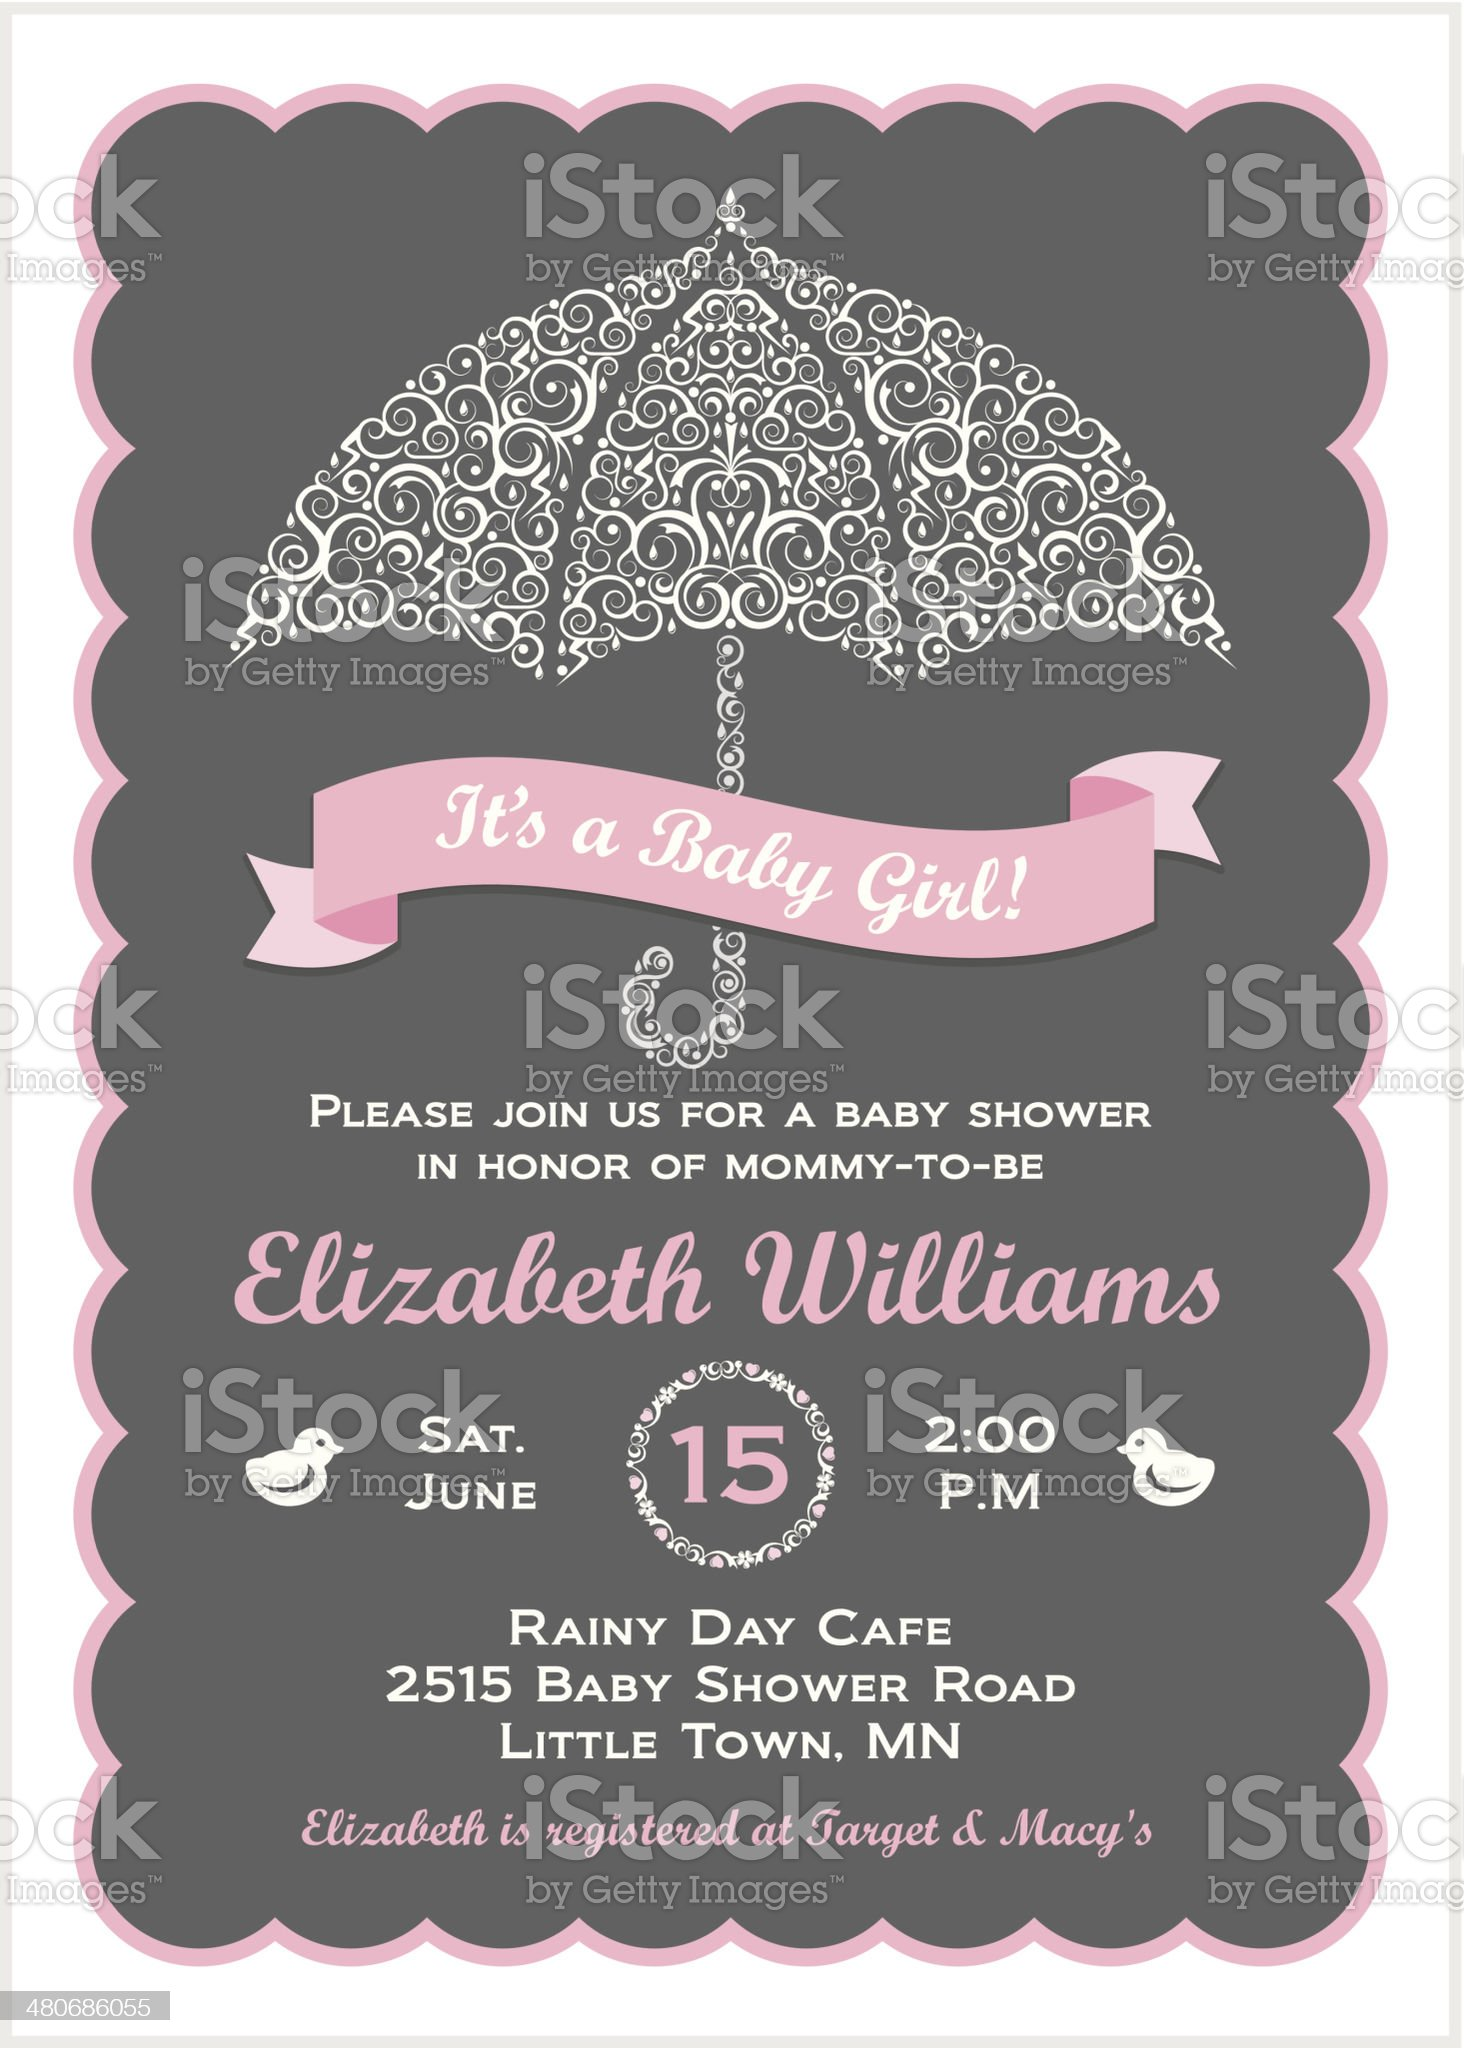 It's a Baby Girl Shower Invitation with Umbrella royalty-free stock vector art